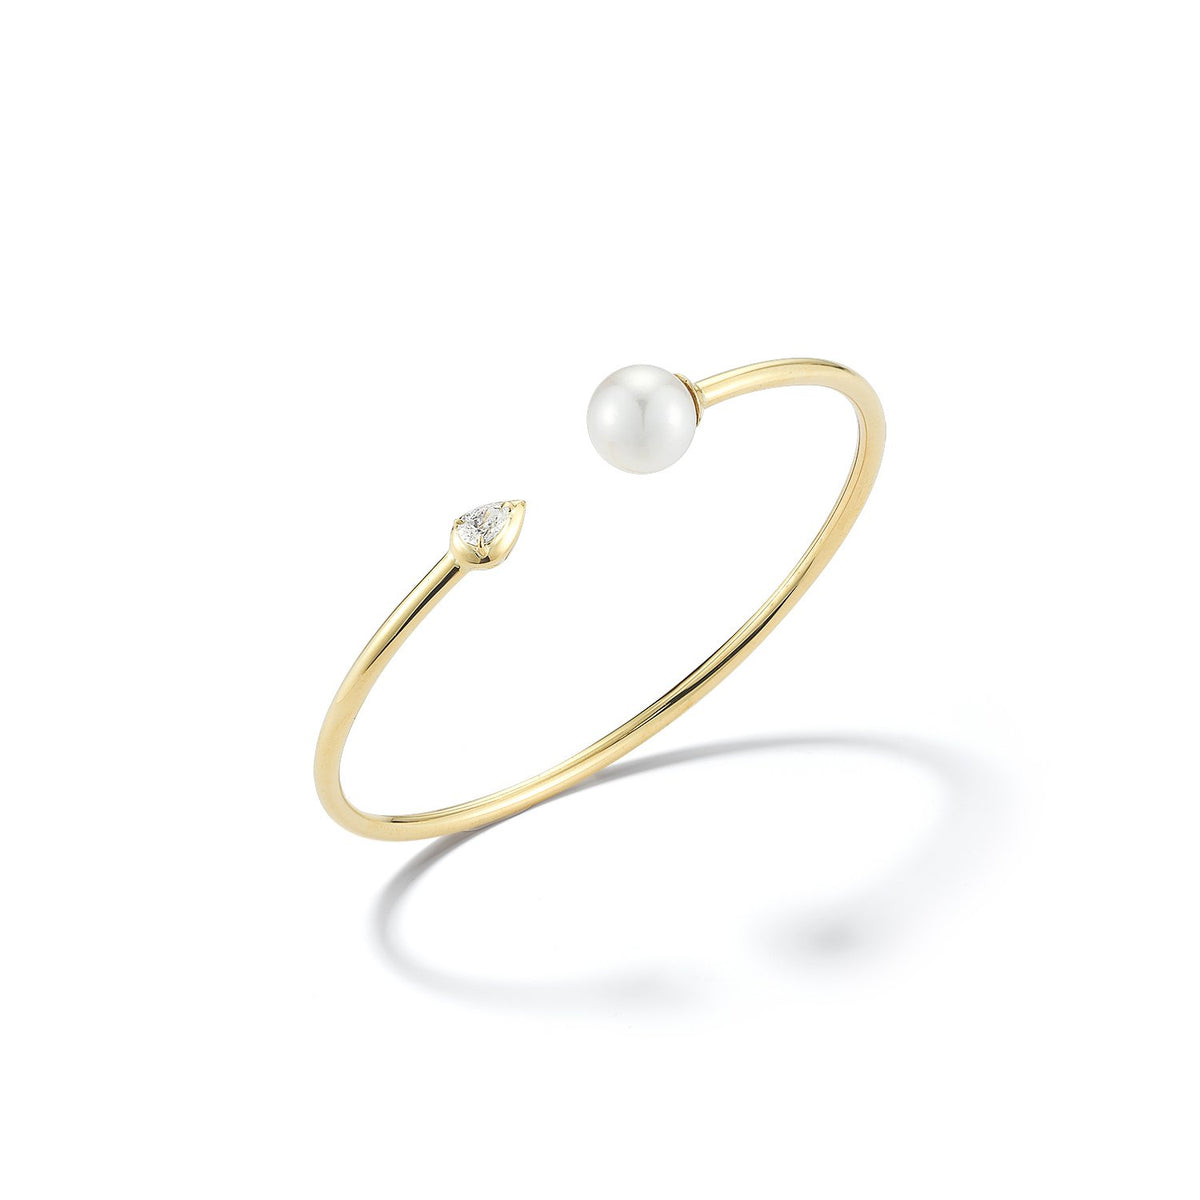 Valani 18K Yellow Gold Zurie Pearl Cuff